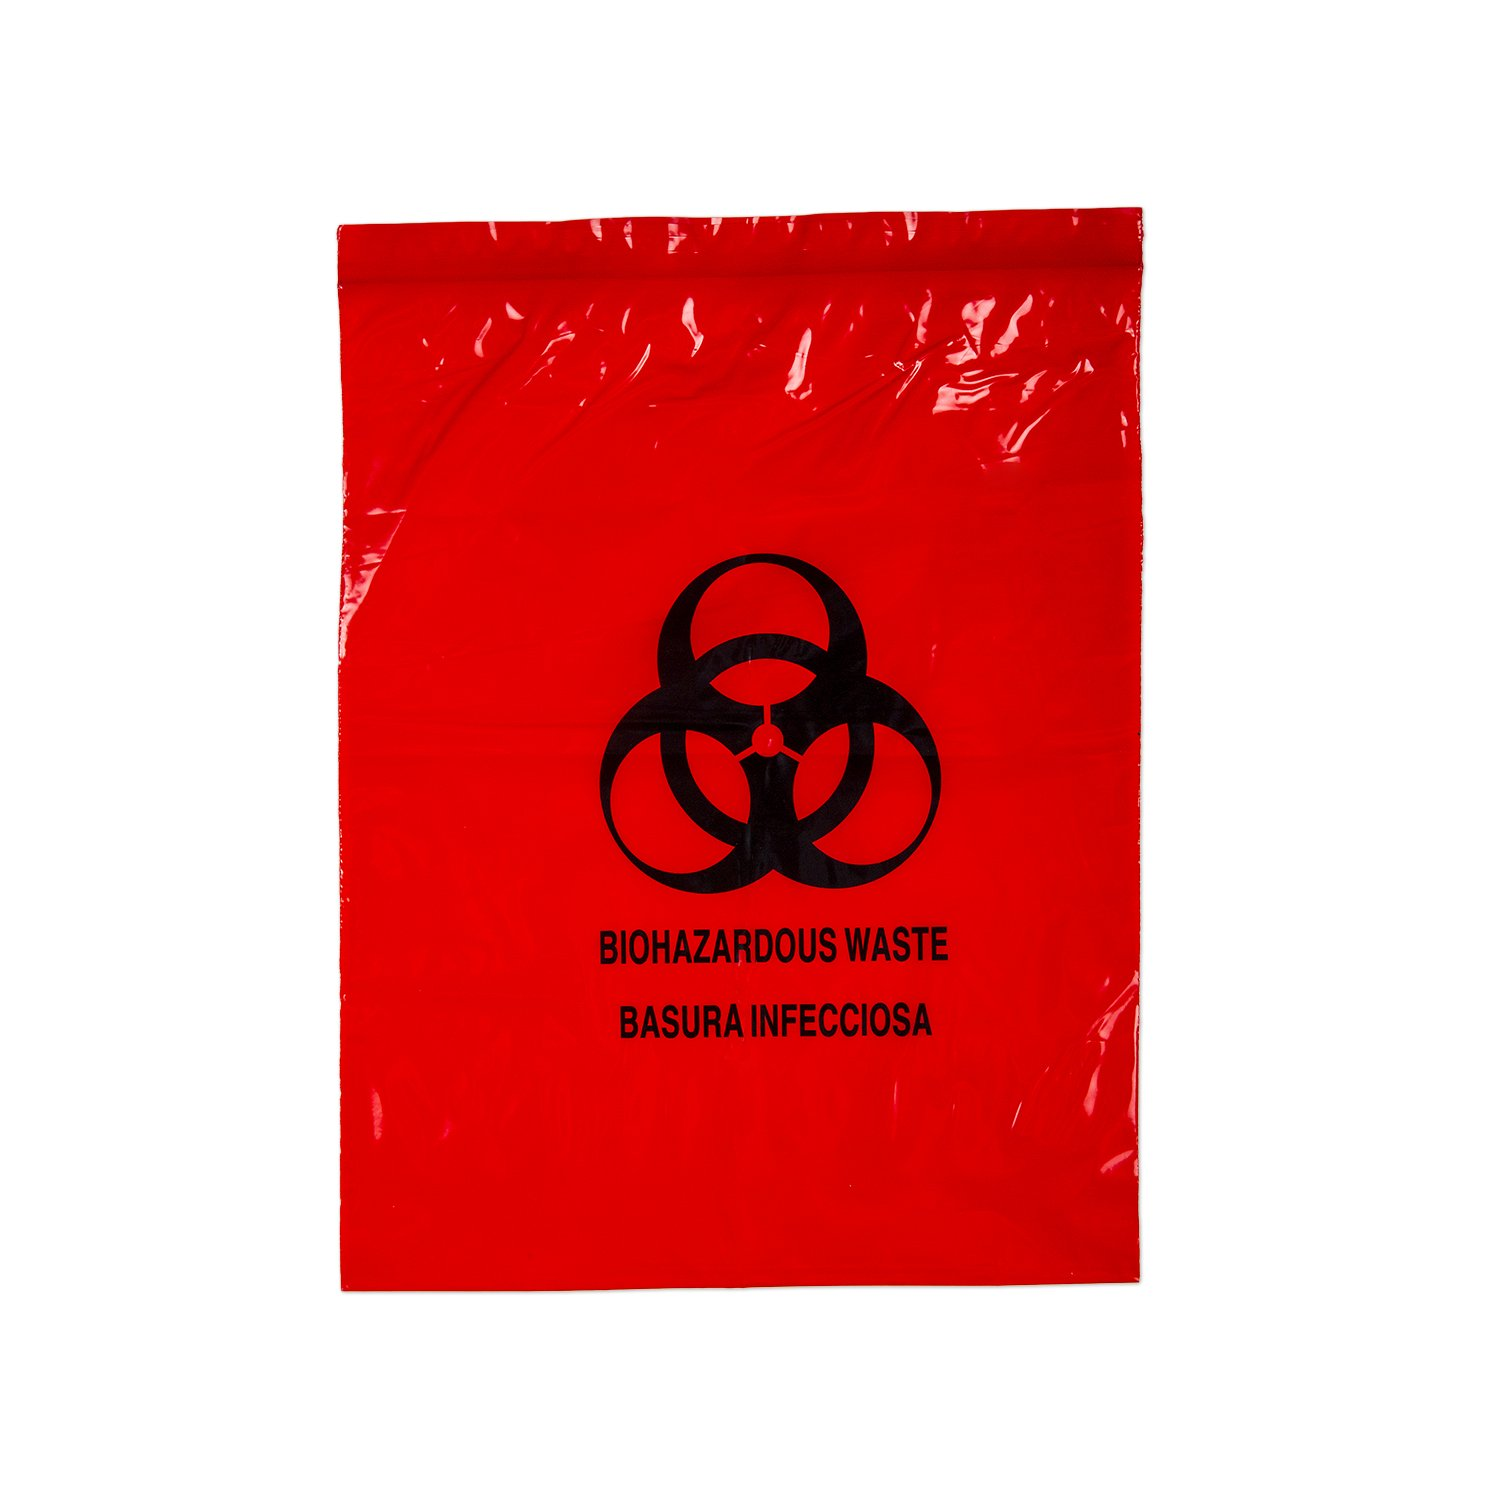 Medegen Medical Products 4921 Lab Specimen Transport Bags with Print, 12'' x 15'', 2 Mile Gauge, Red (Pack of 500)